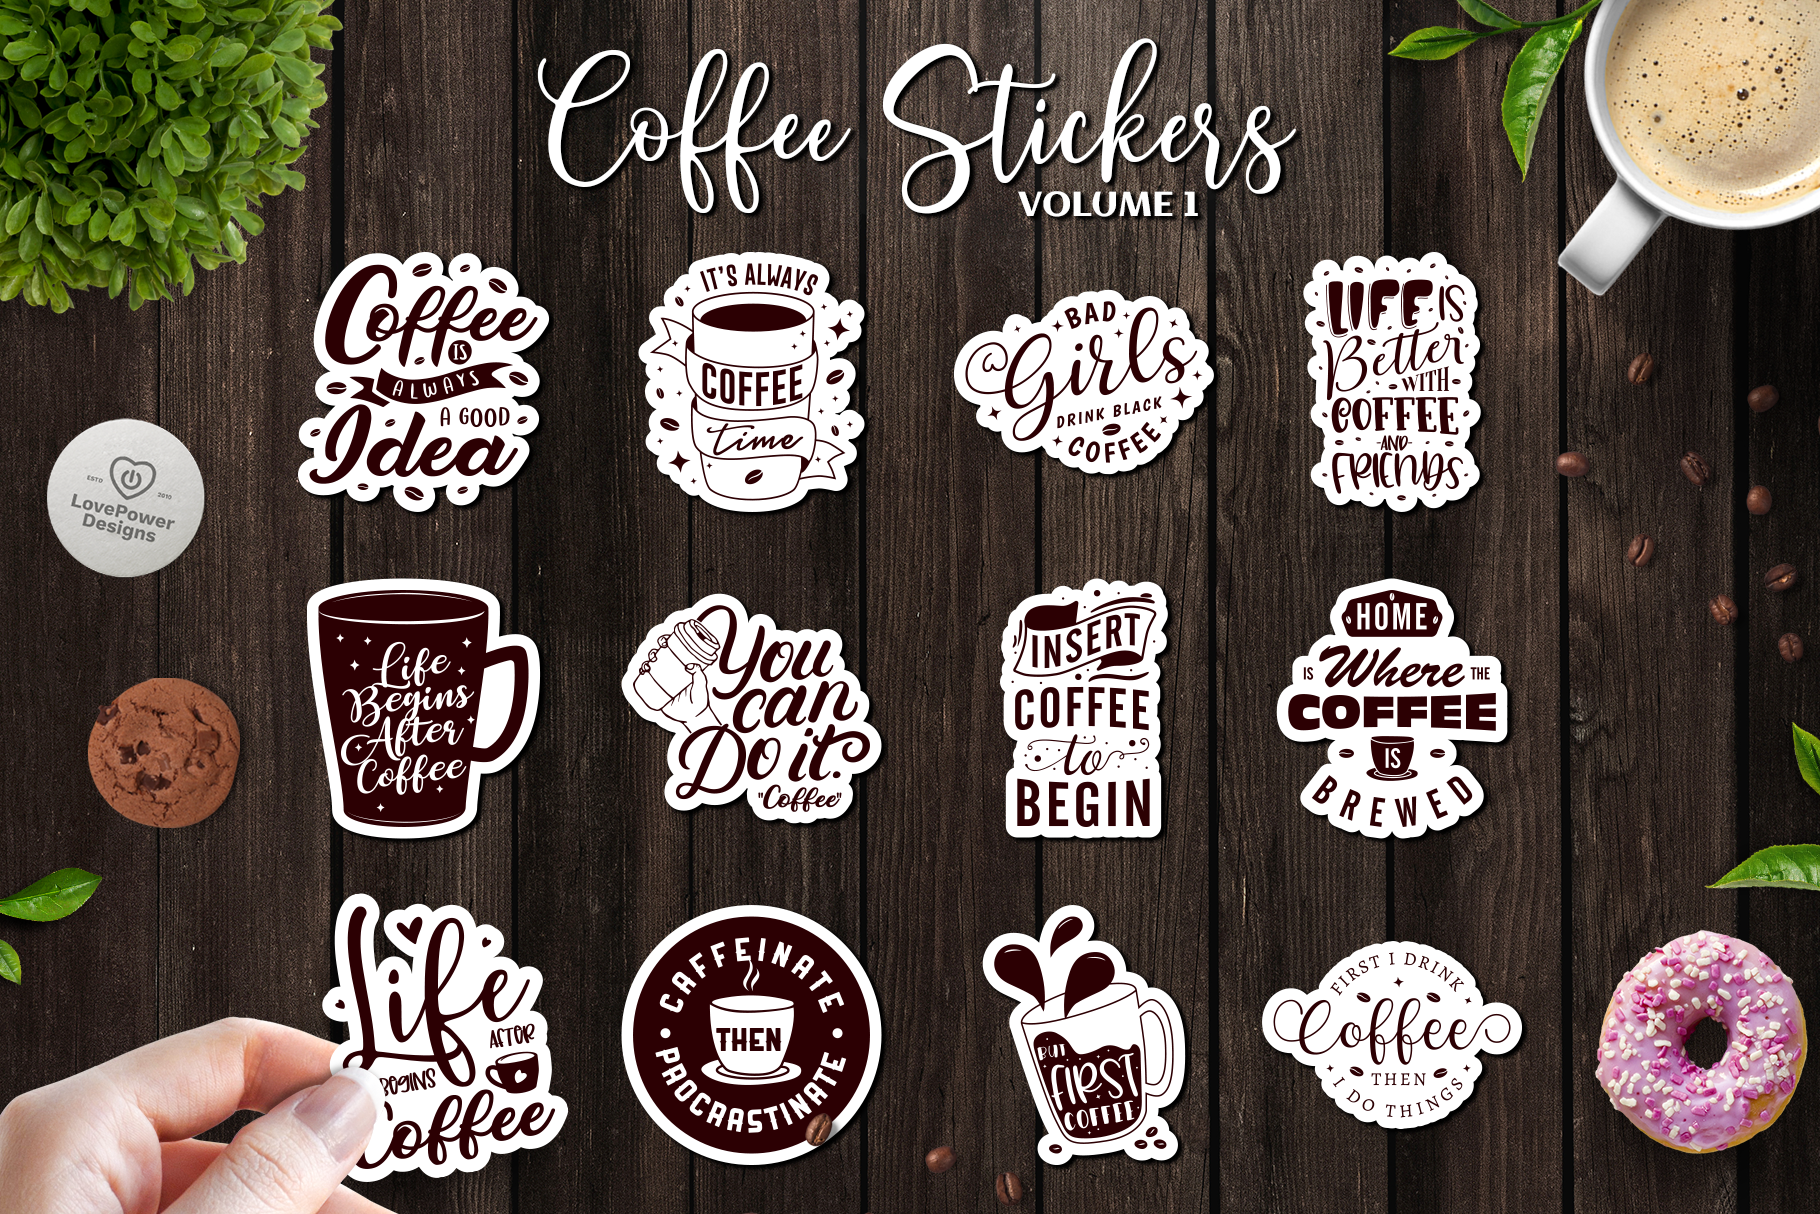 Sticker Bundle | 12 Coffee Stickers with White Border Vol1